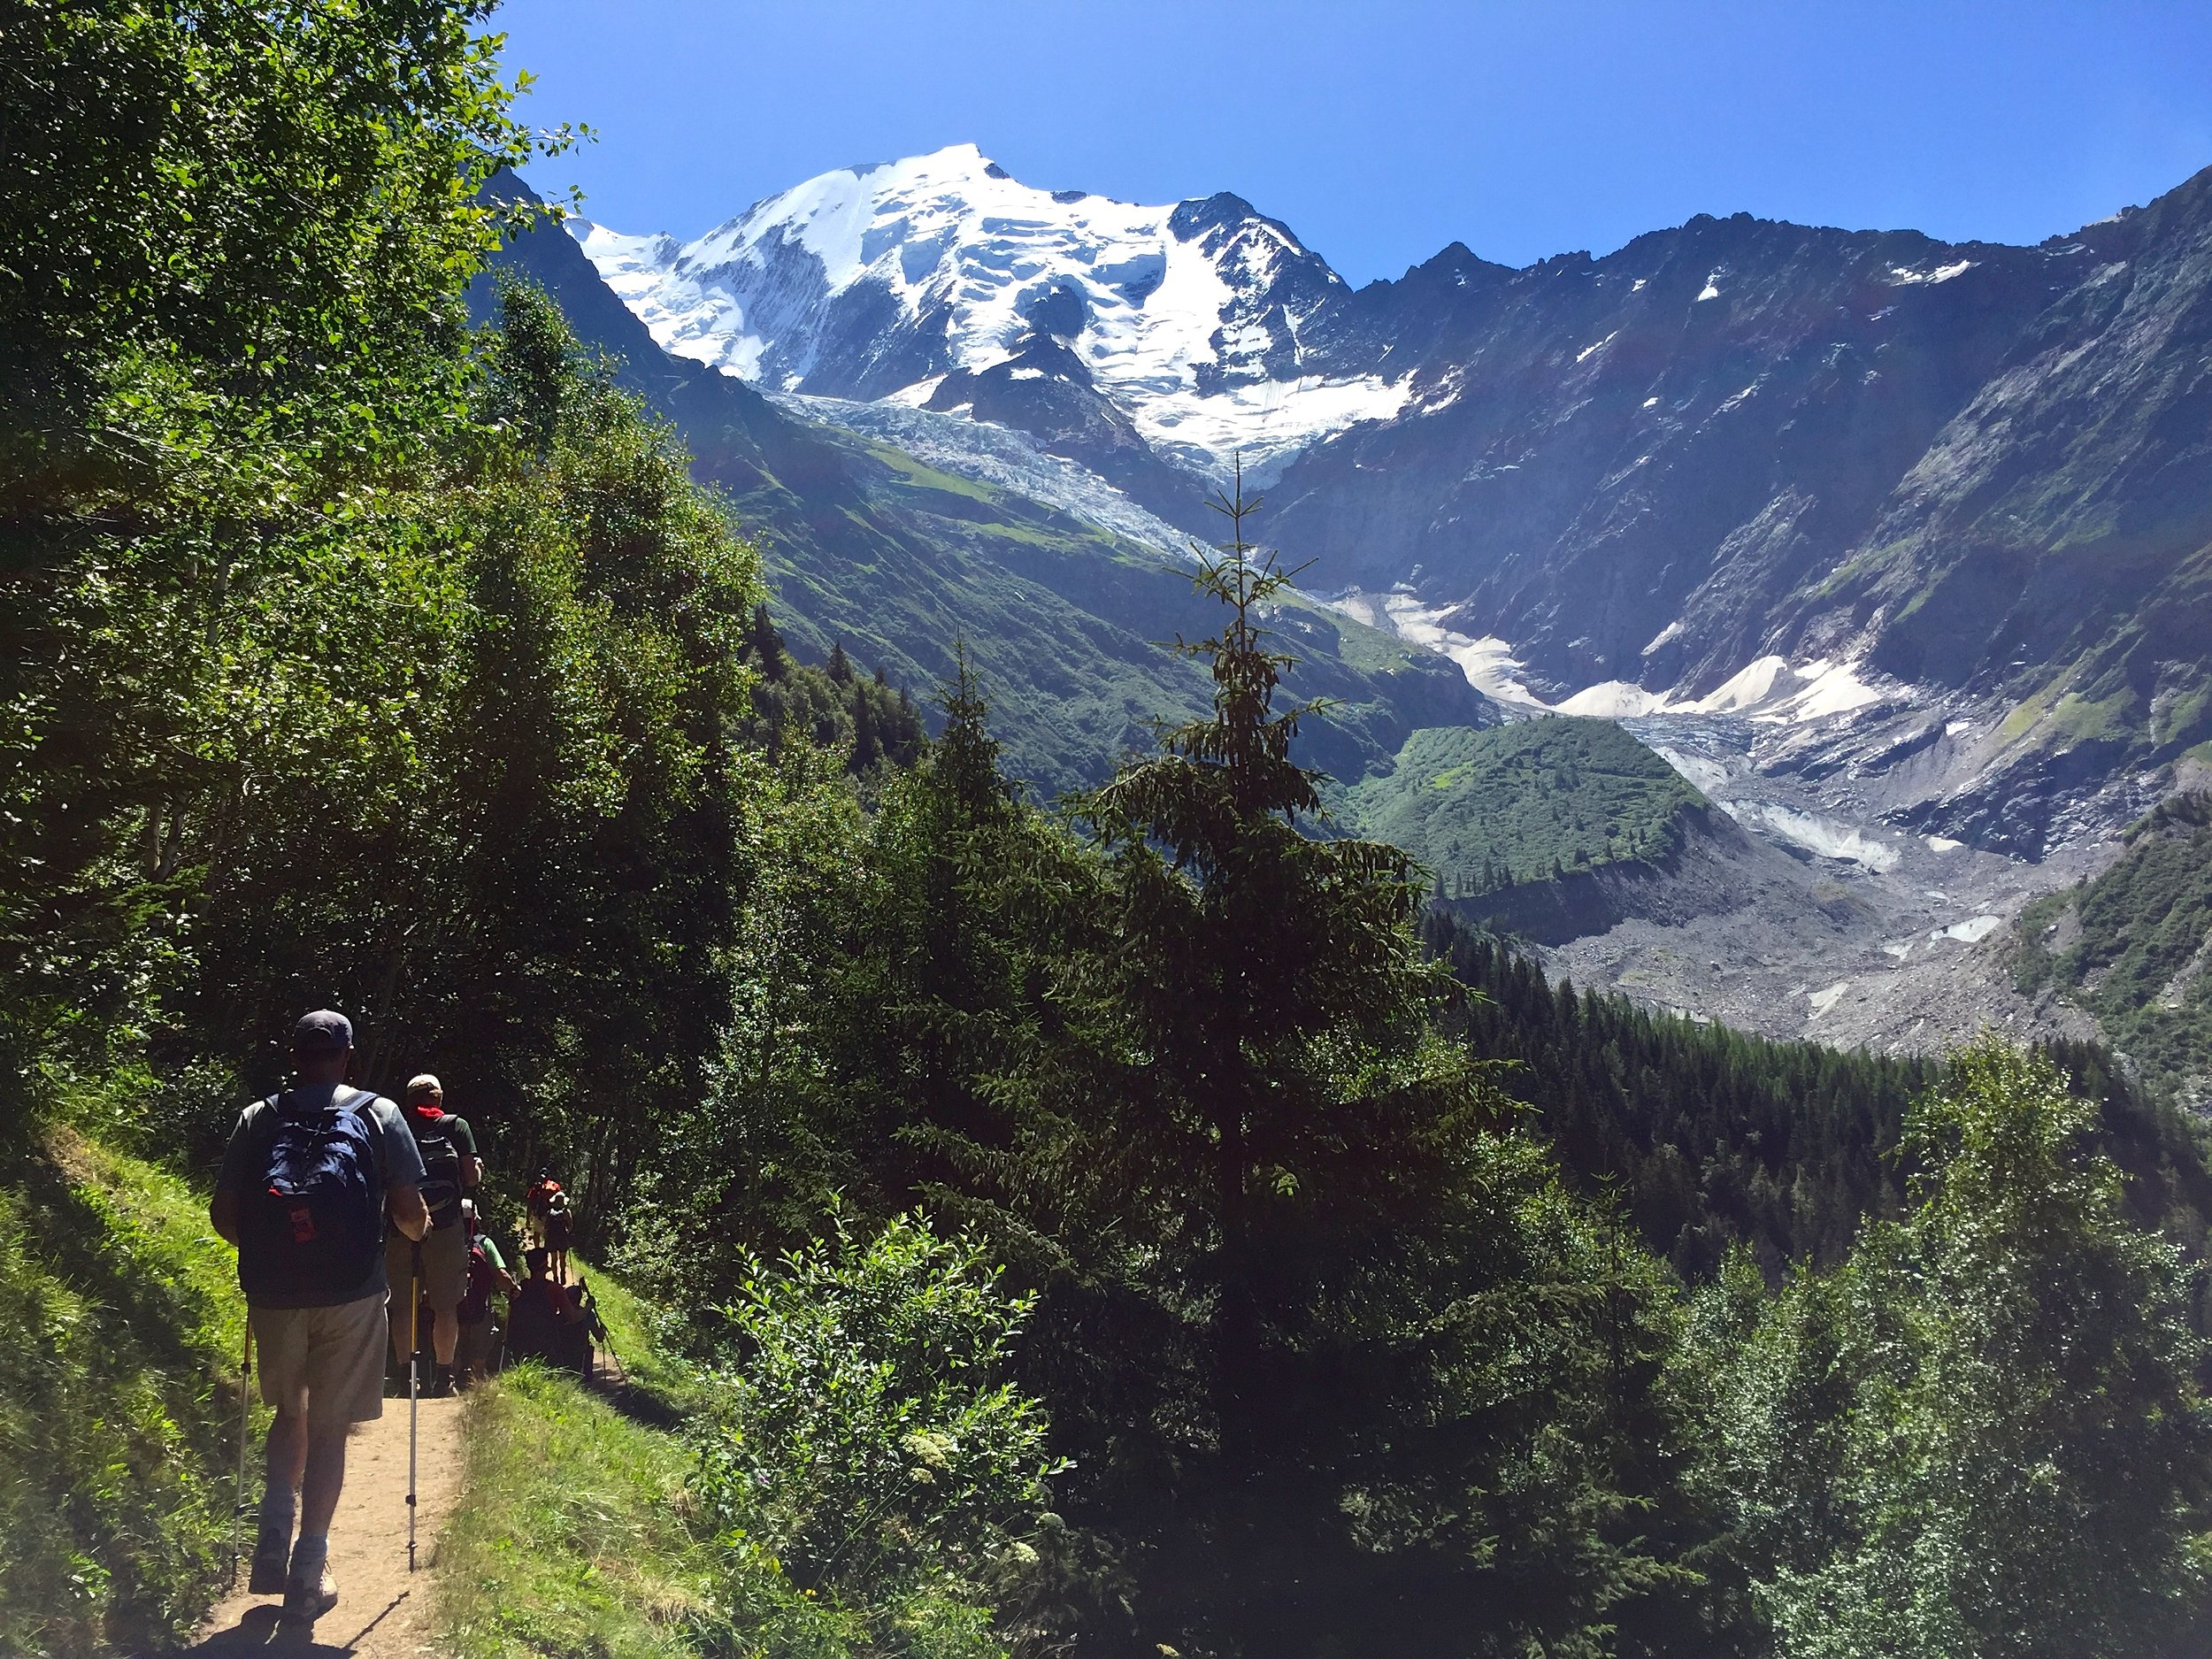 First day, hiking under the Mont Blanc massif.